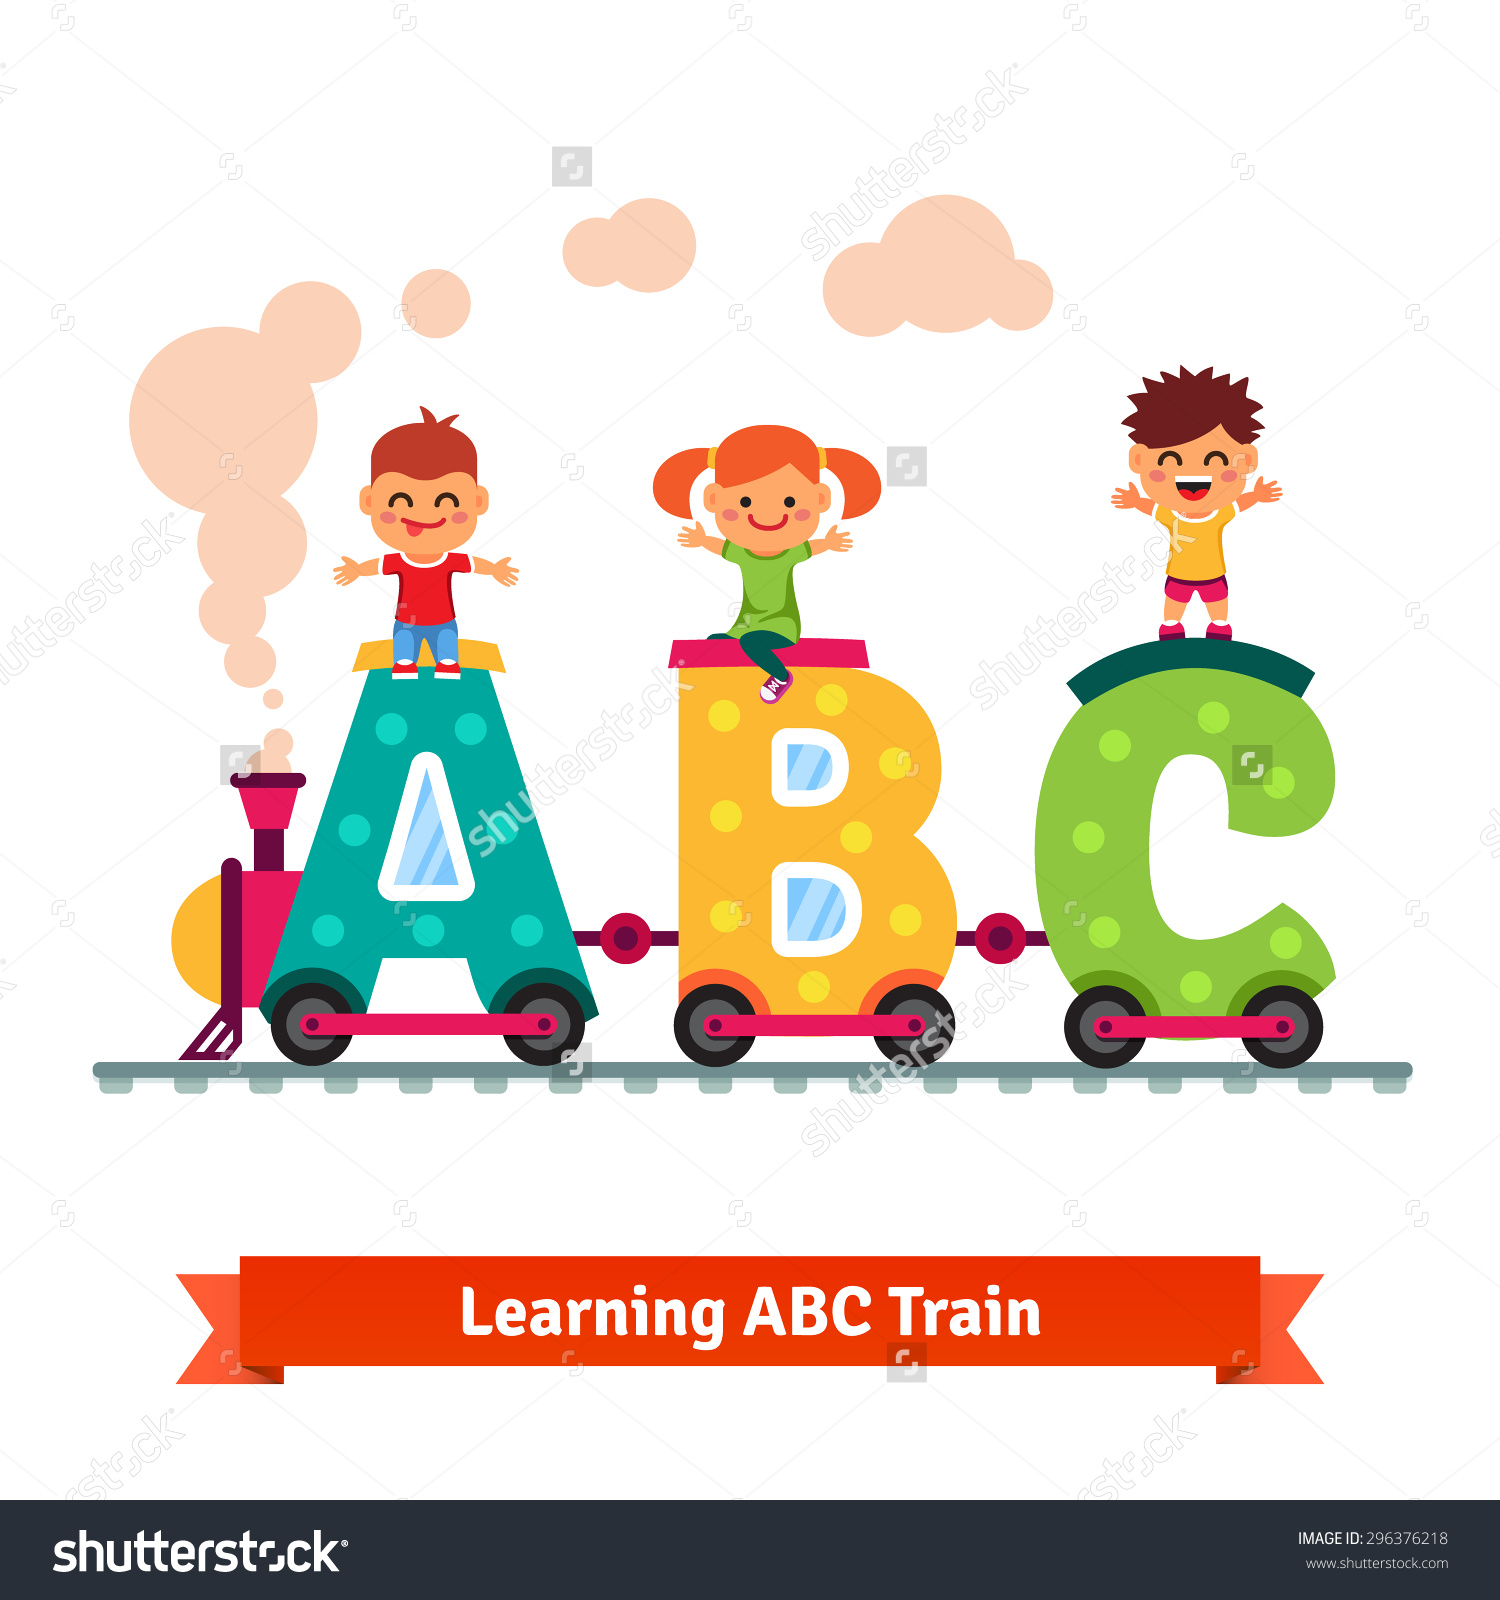 Kids learning abc clipart clip art free stock Kids Boys Girl Riding On Abc Stock Vector 296376218 - Shutterstock clip art free stock